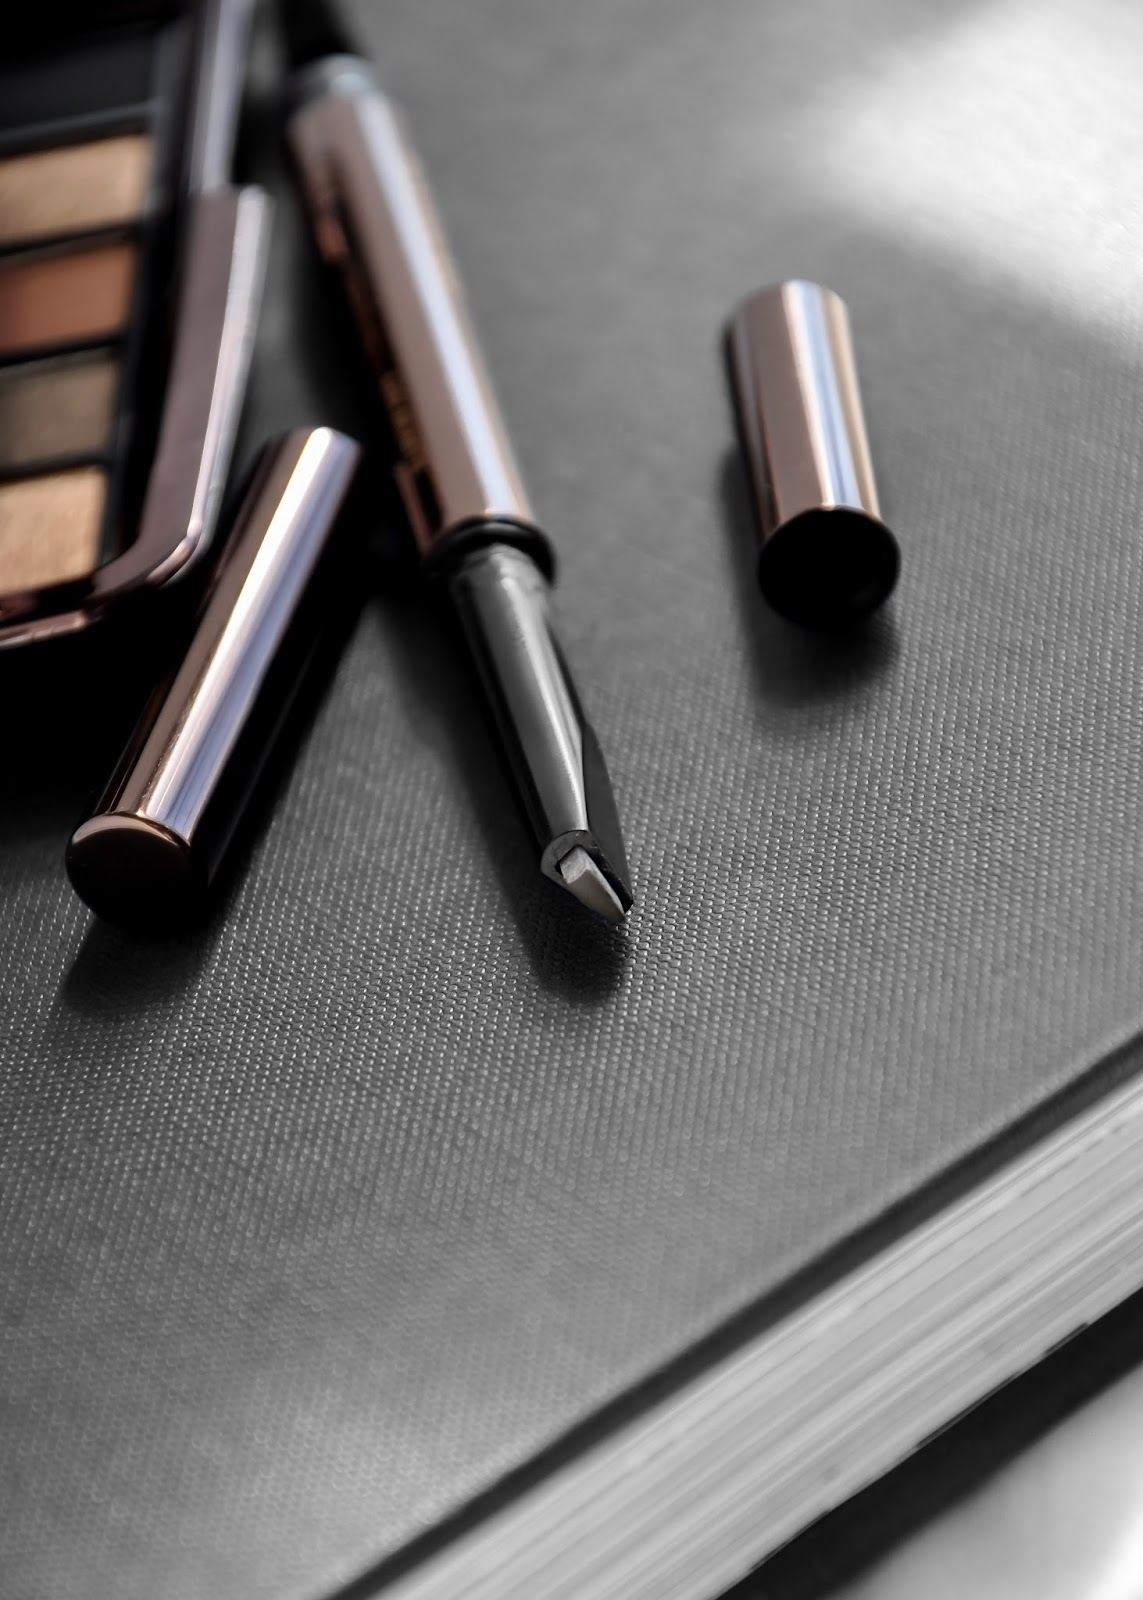 Hourglass Cosmetics Arch Brow Sculpting Brow Pencil swatches